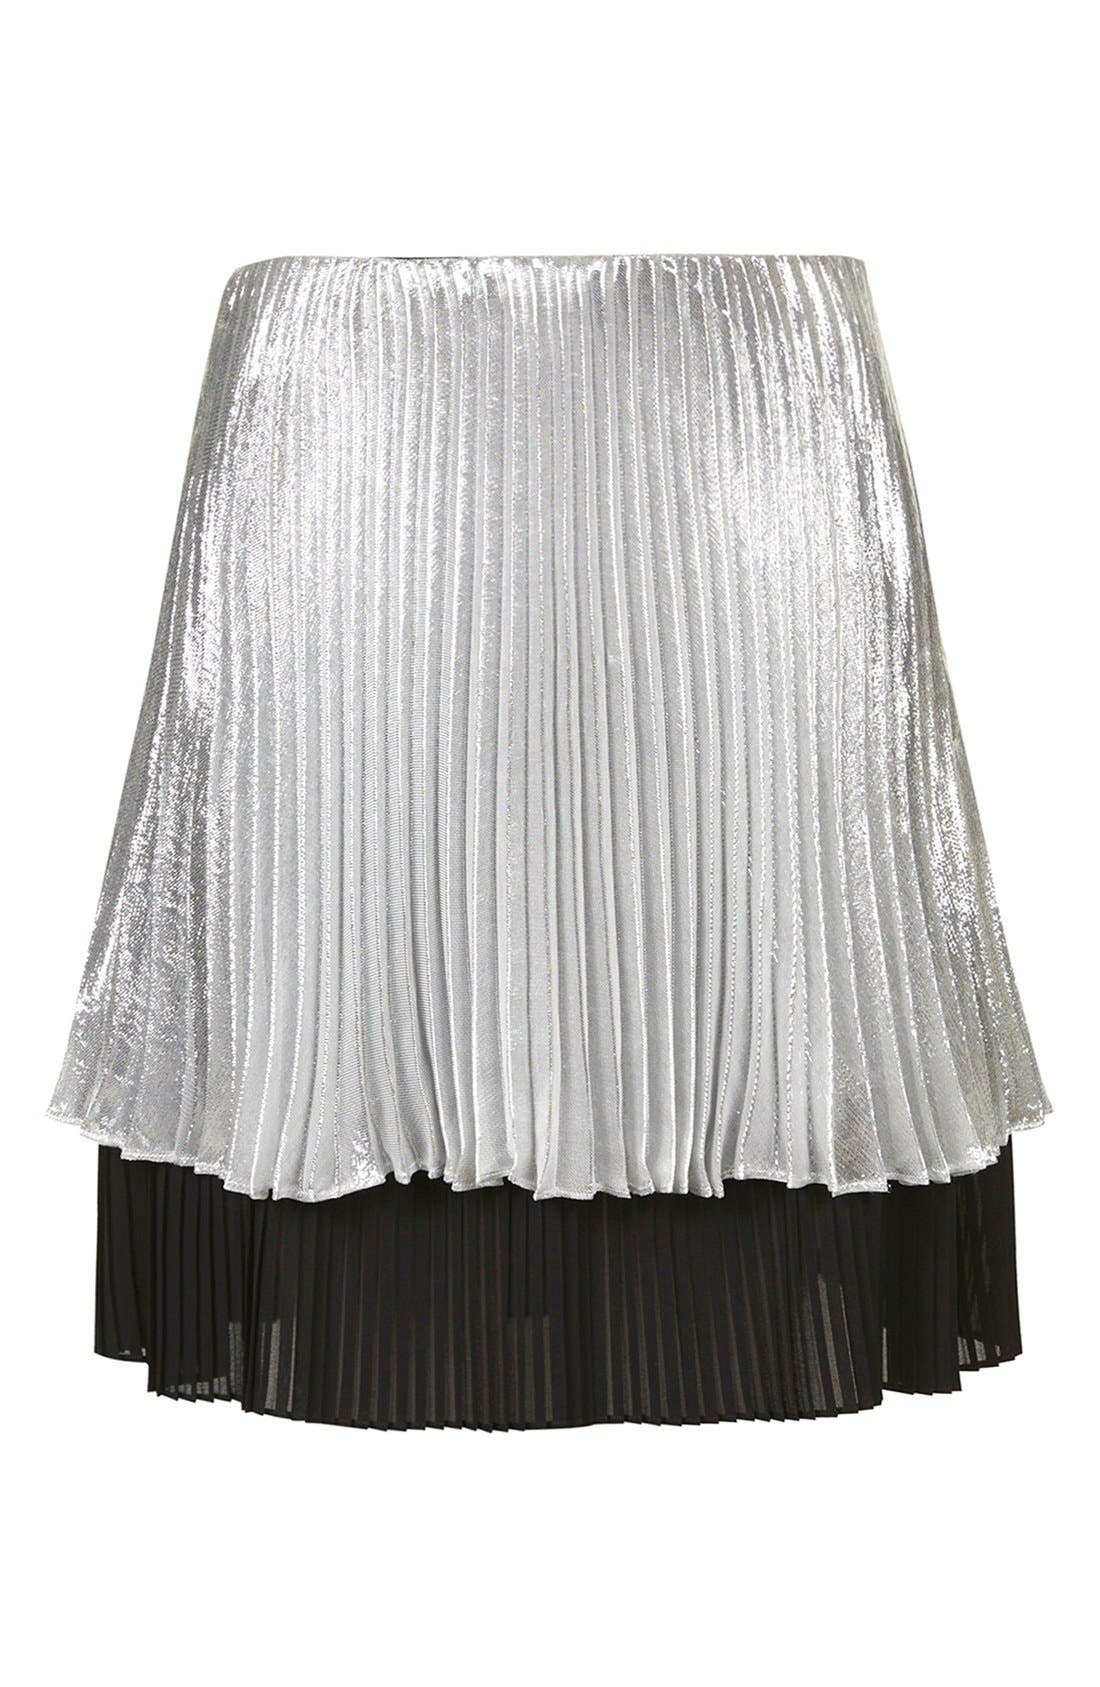 'Sun Ray' Two Tier Pleated Skirt,                             Alternate thumbnail 4, color,                             Silver